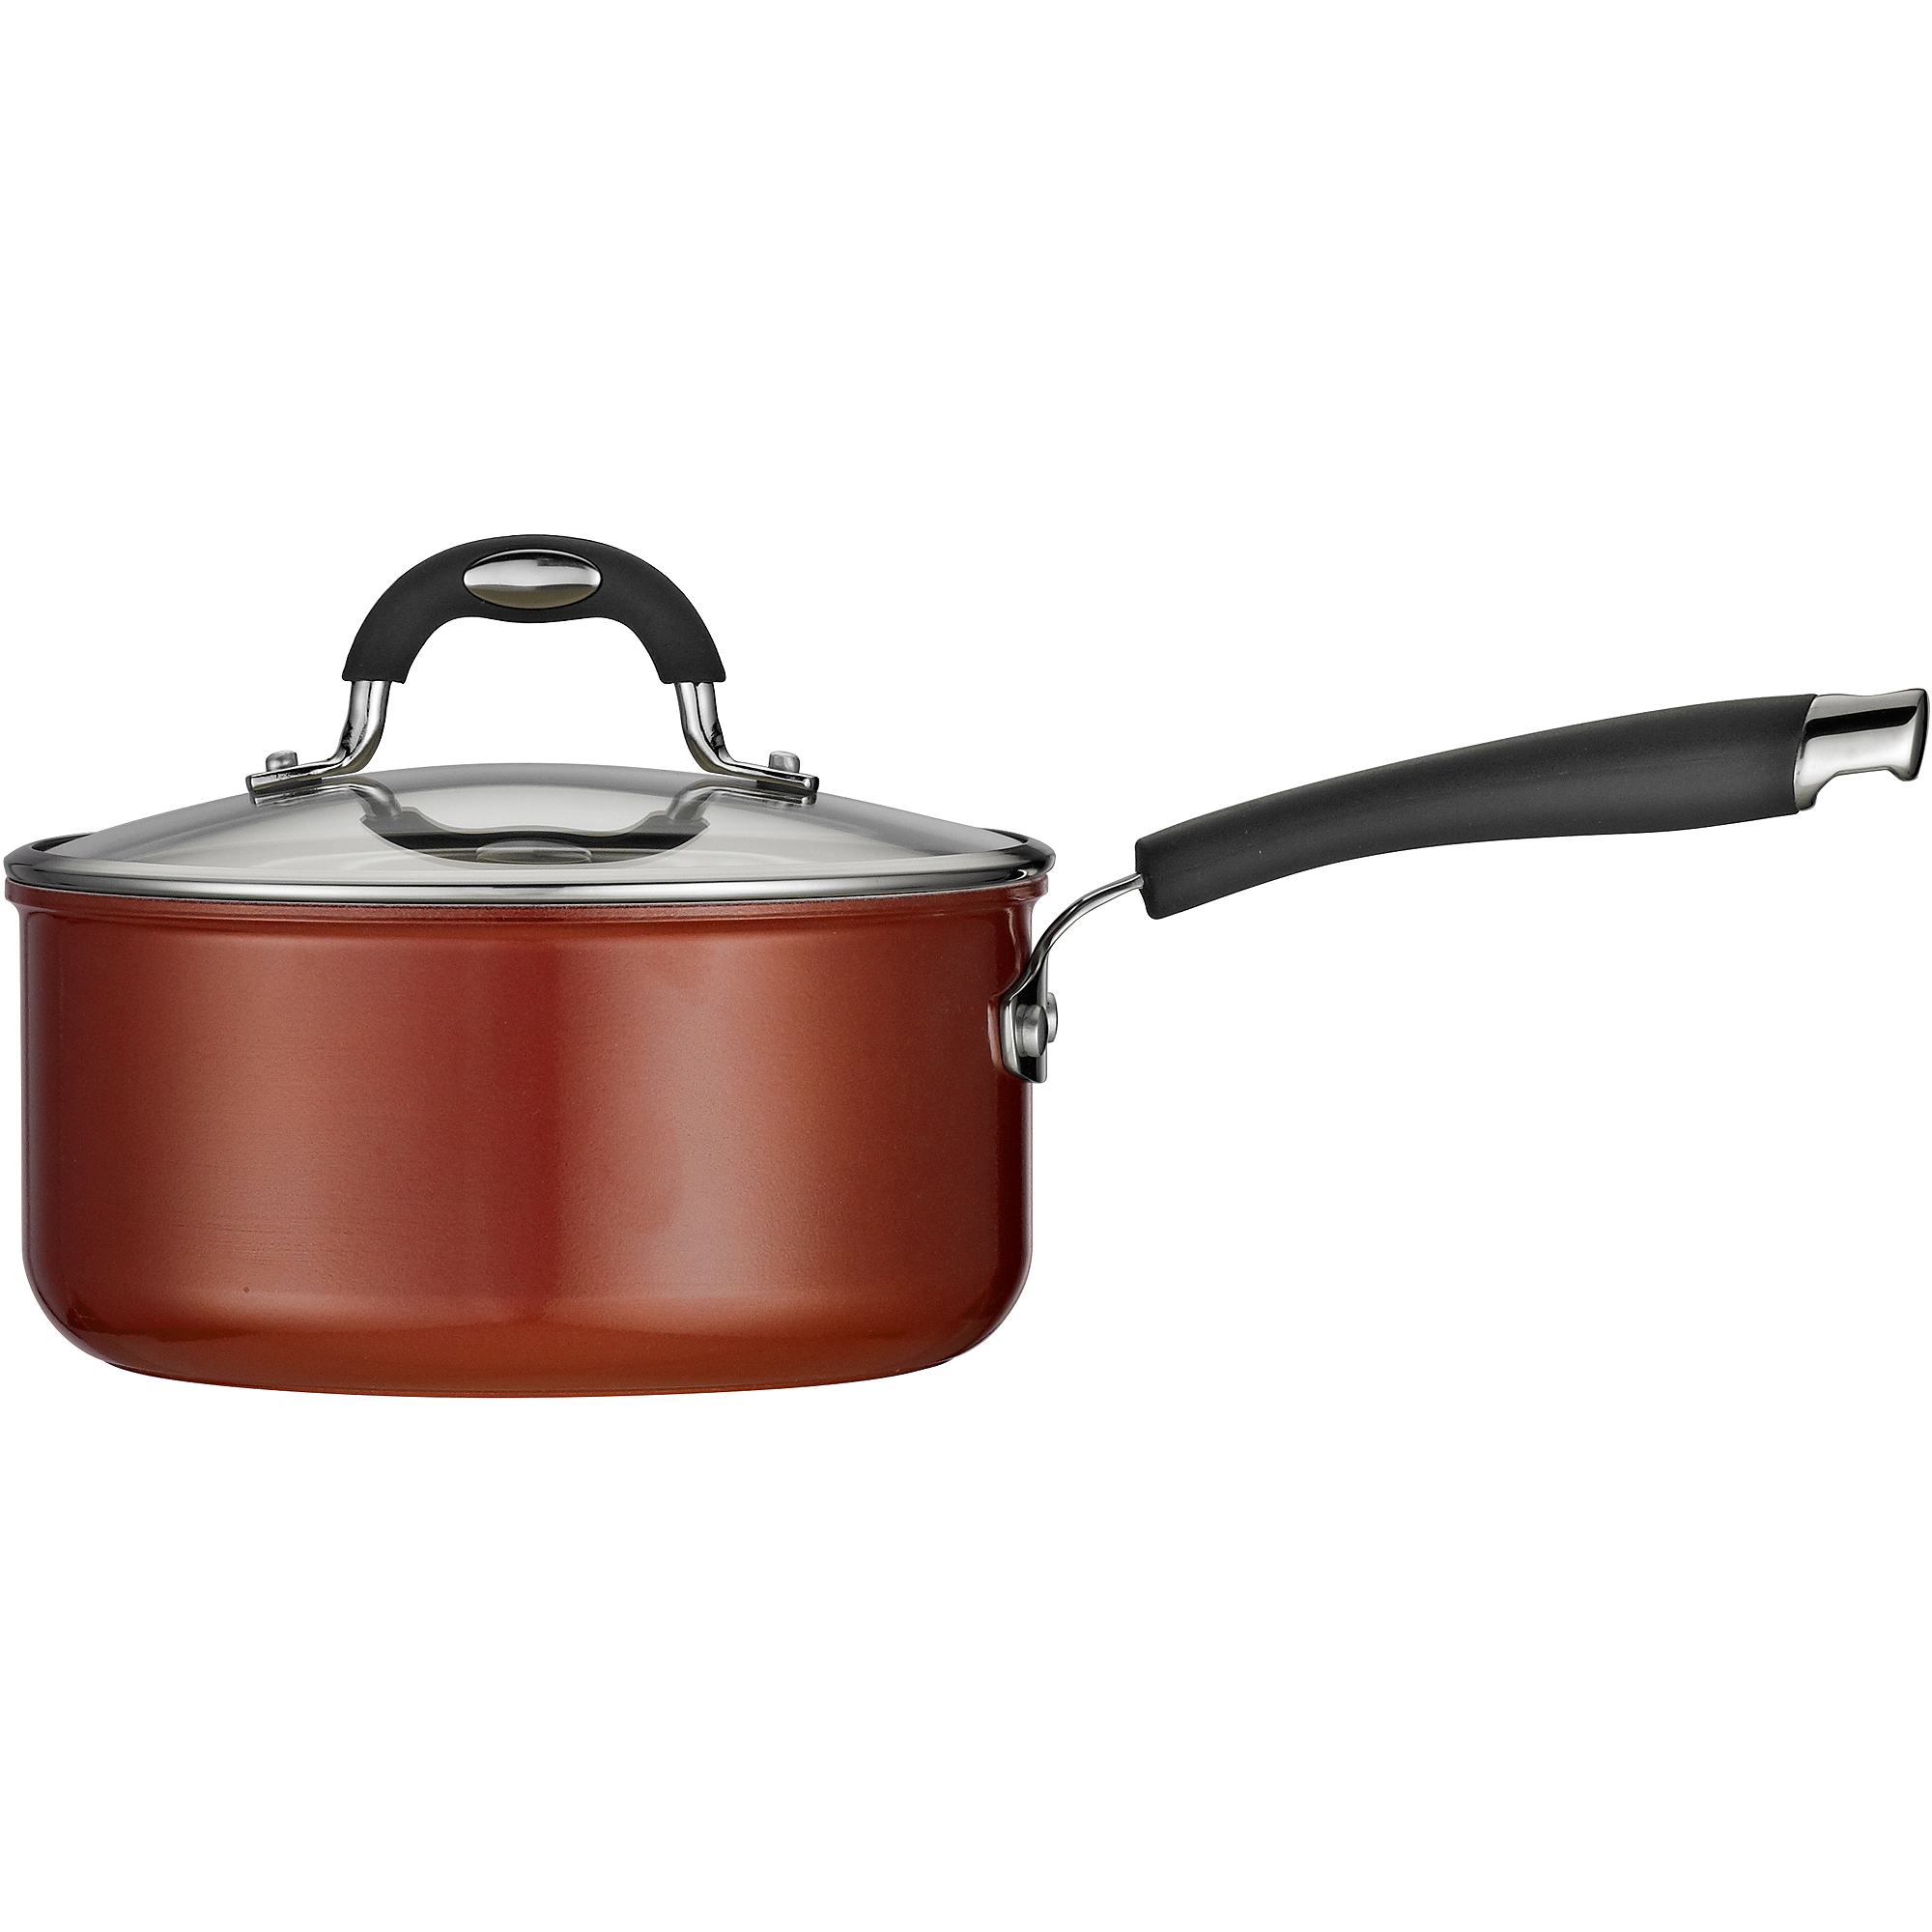 Tramontina Style 3 Quart Ceramic Nonstick Covered Sauce